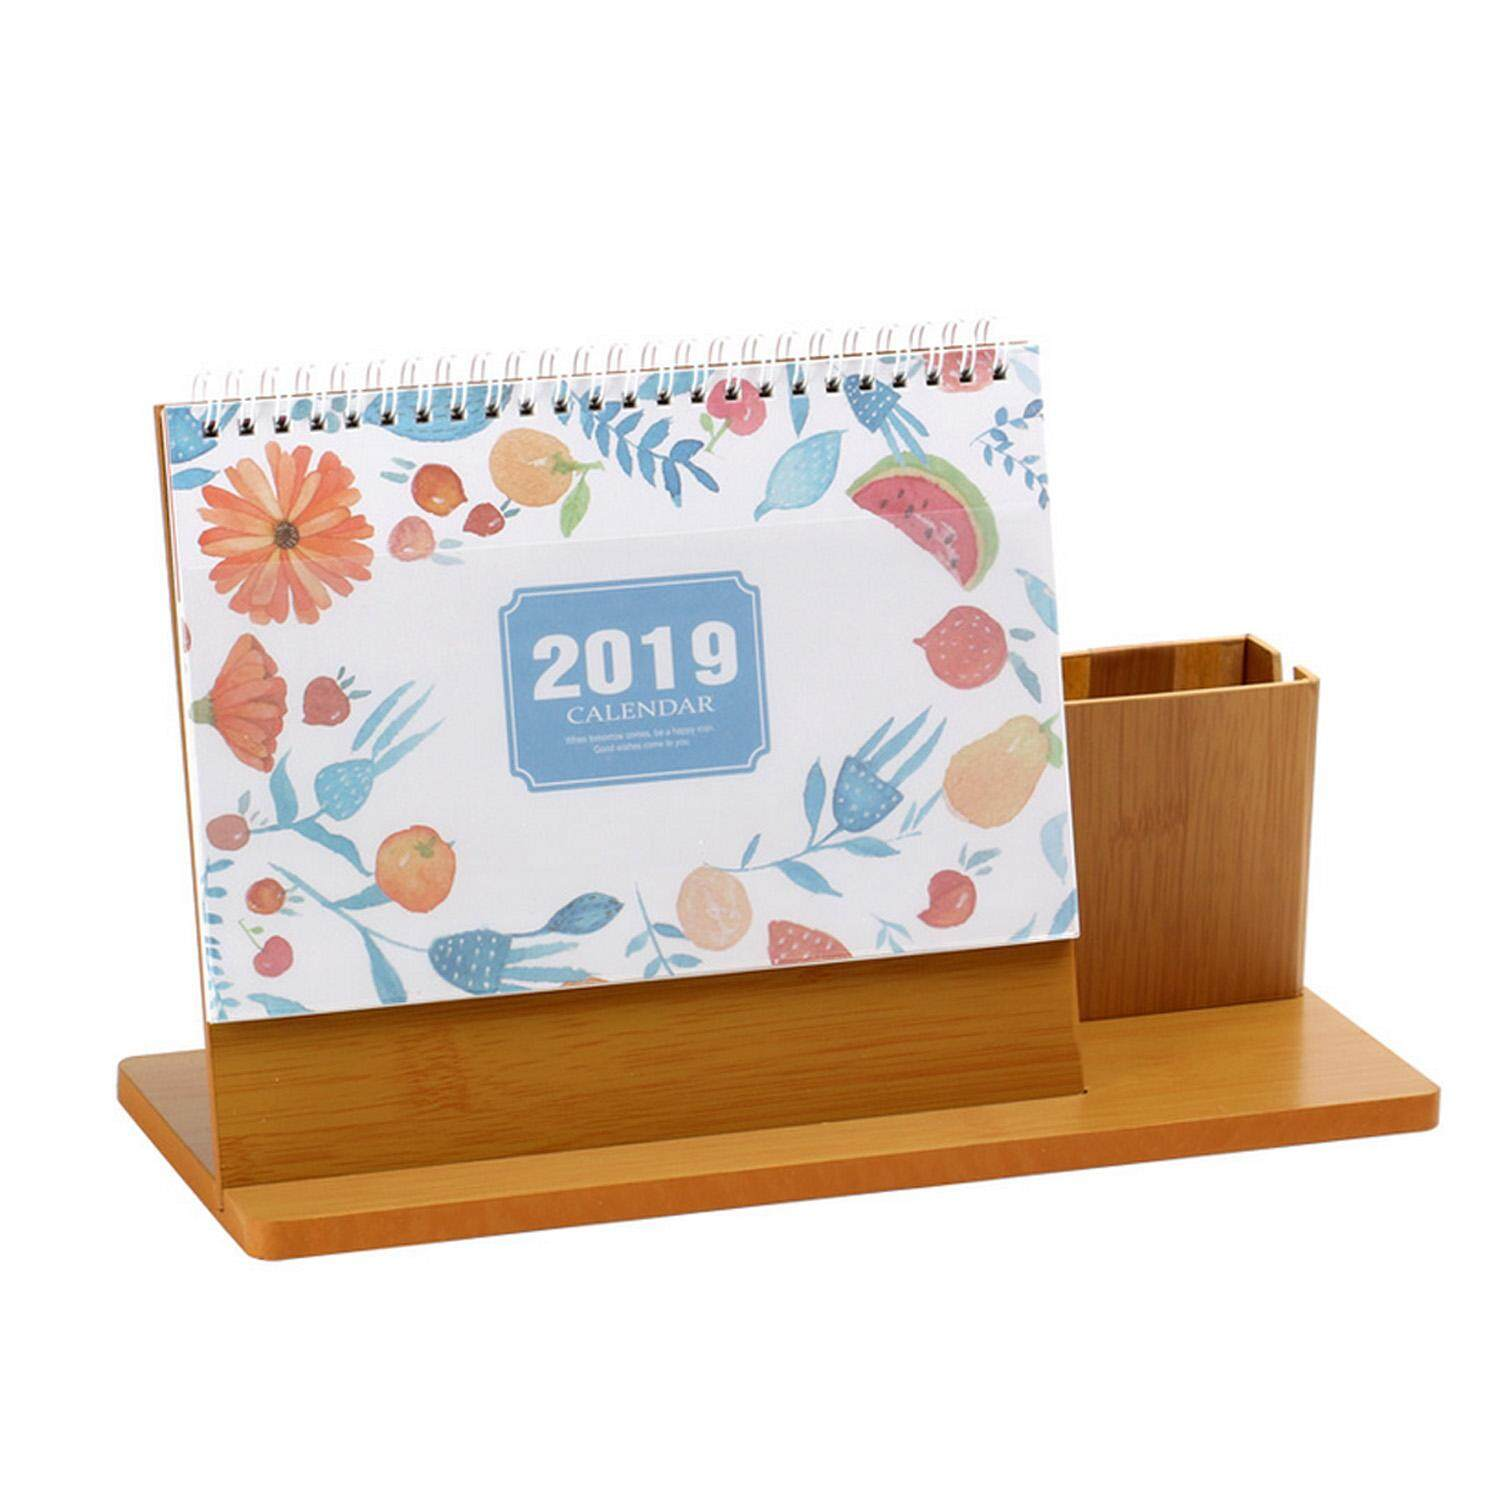 2019 Wooden Desk Standing Yearly Daily Planner Calendar With Pen Pencil Holder For Home Office School Supplies By Stoneky.